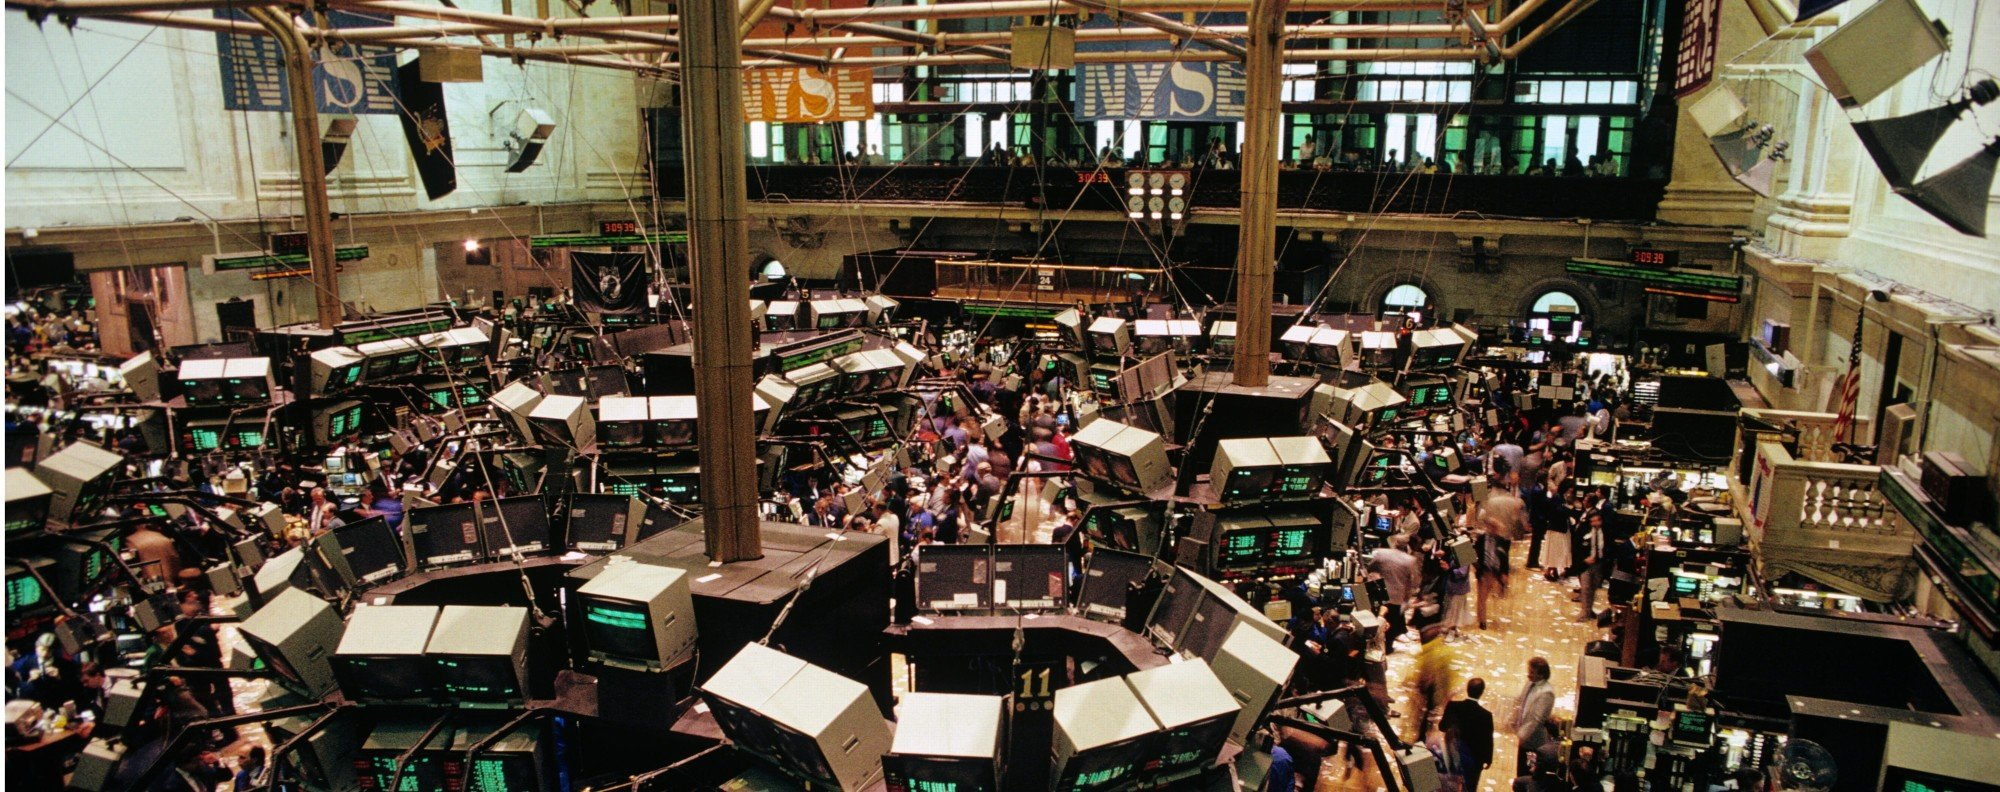 The New York Stock Exchange in the 1980s and early 1990s was rife with insider trading. Picture: Alamy